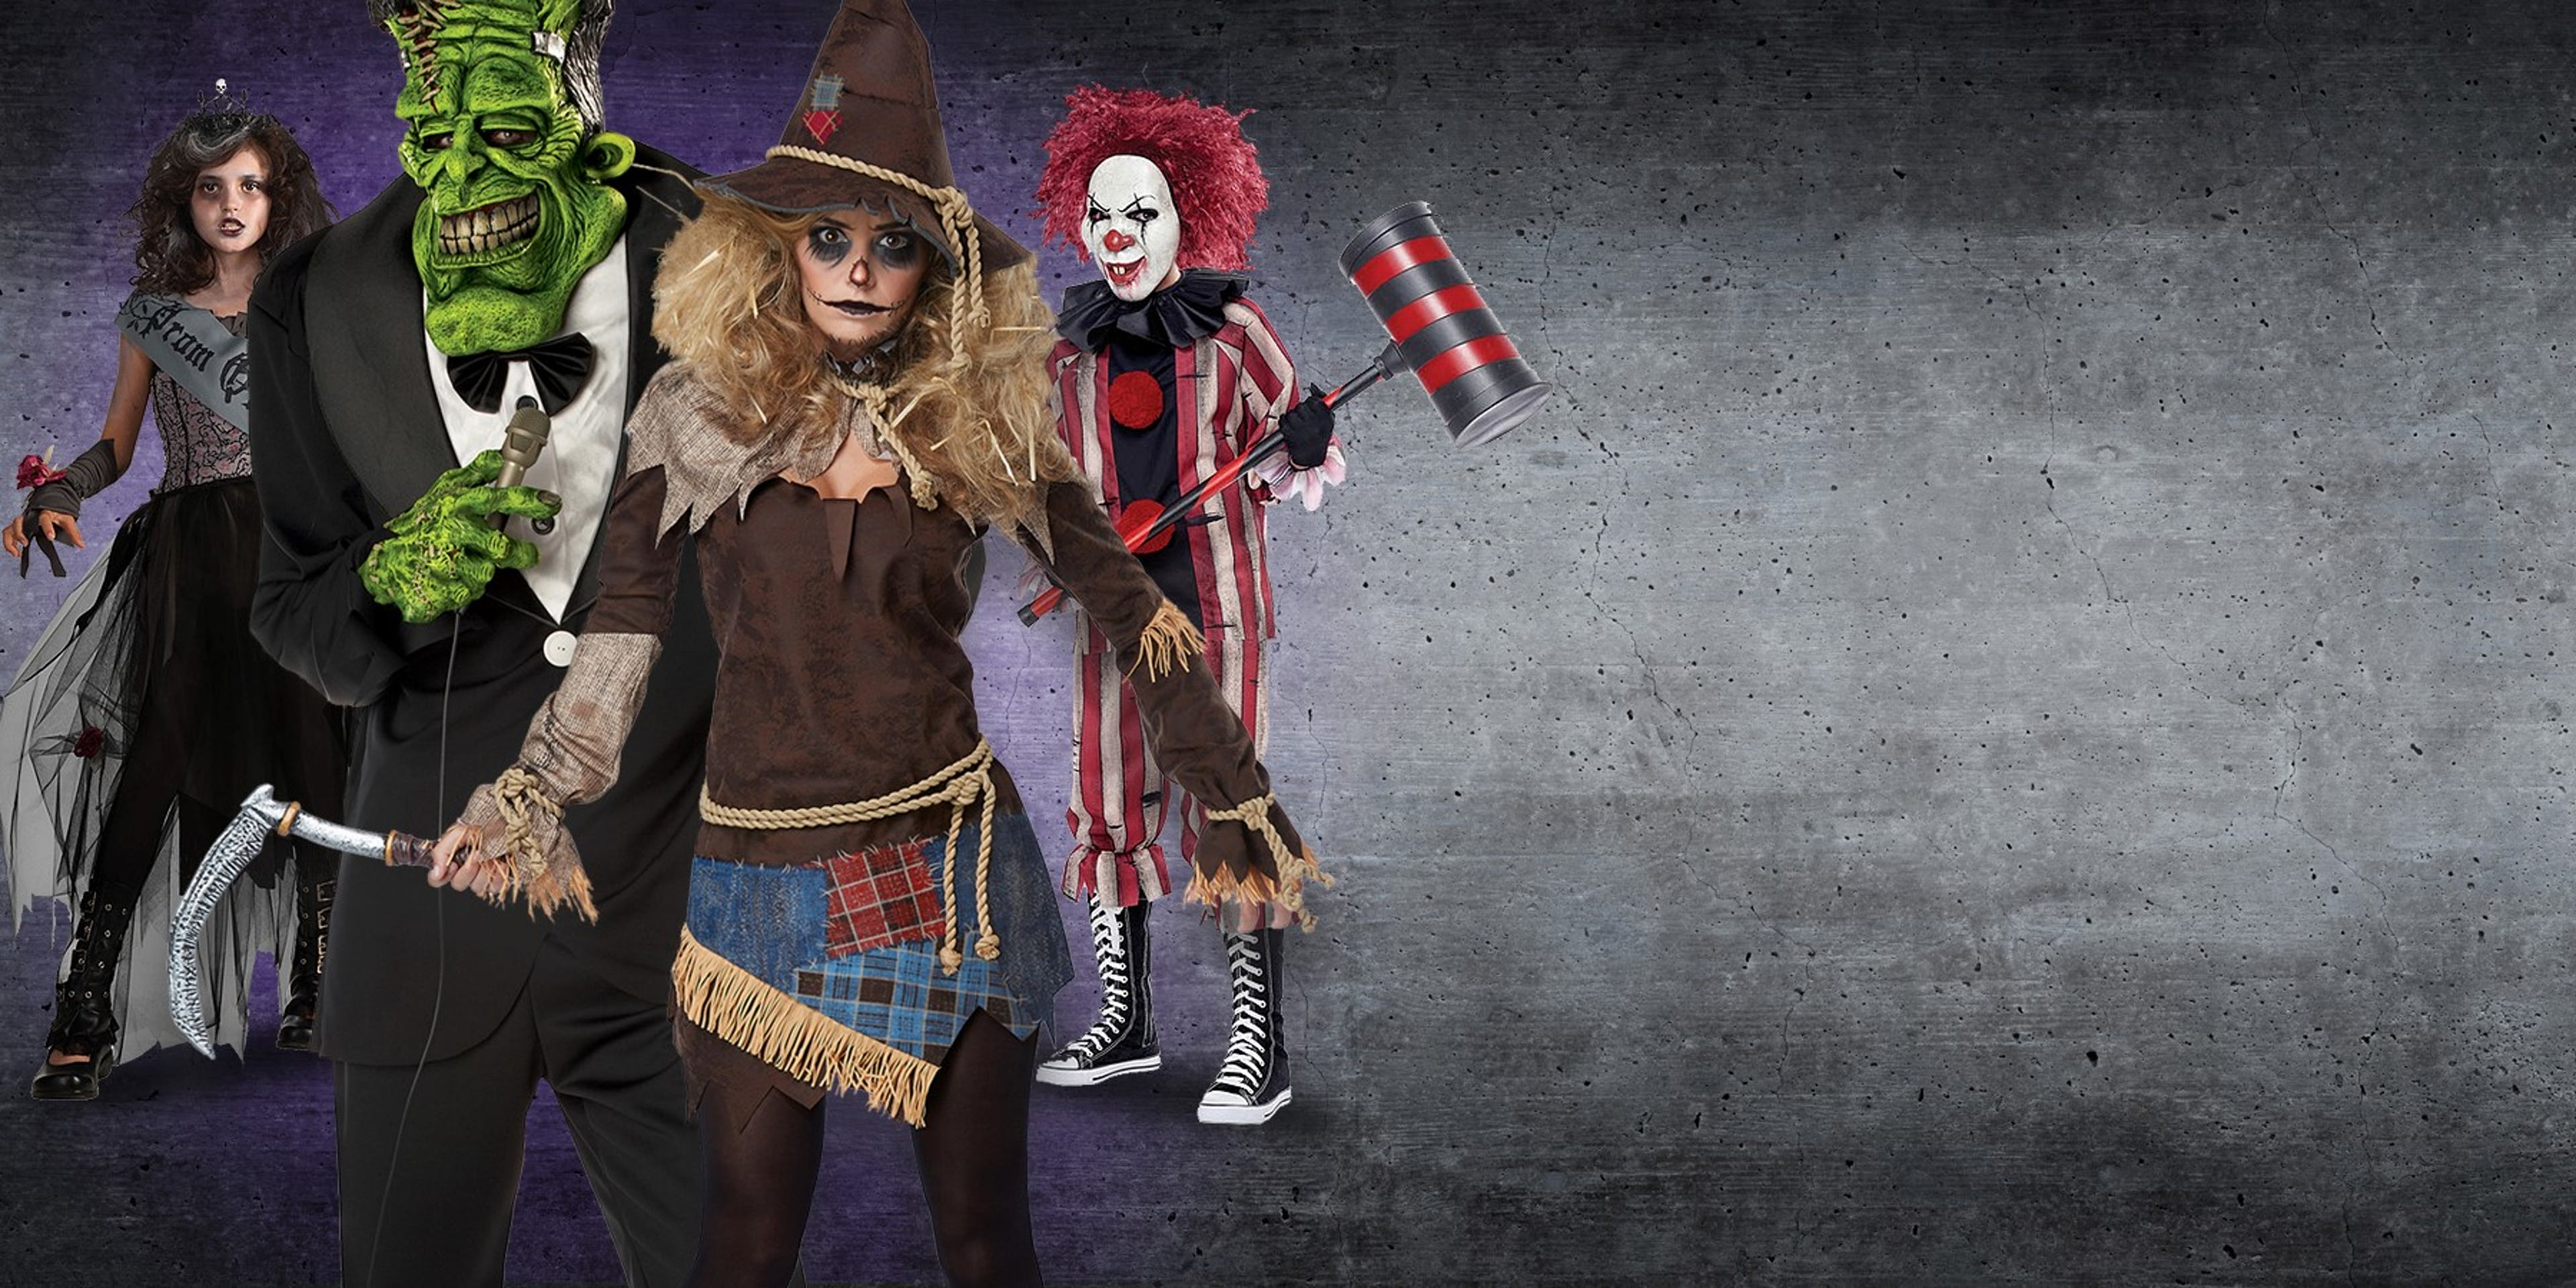 Shows a variety of cool Halloween costume ideas